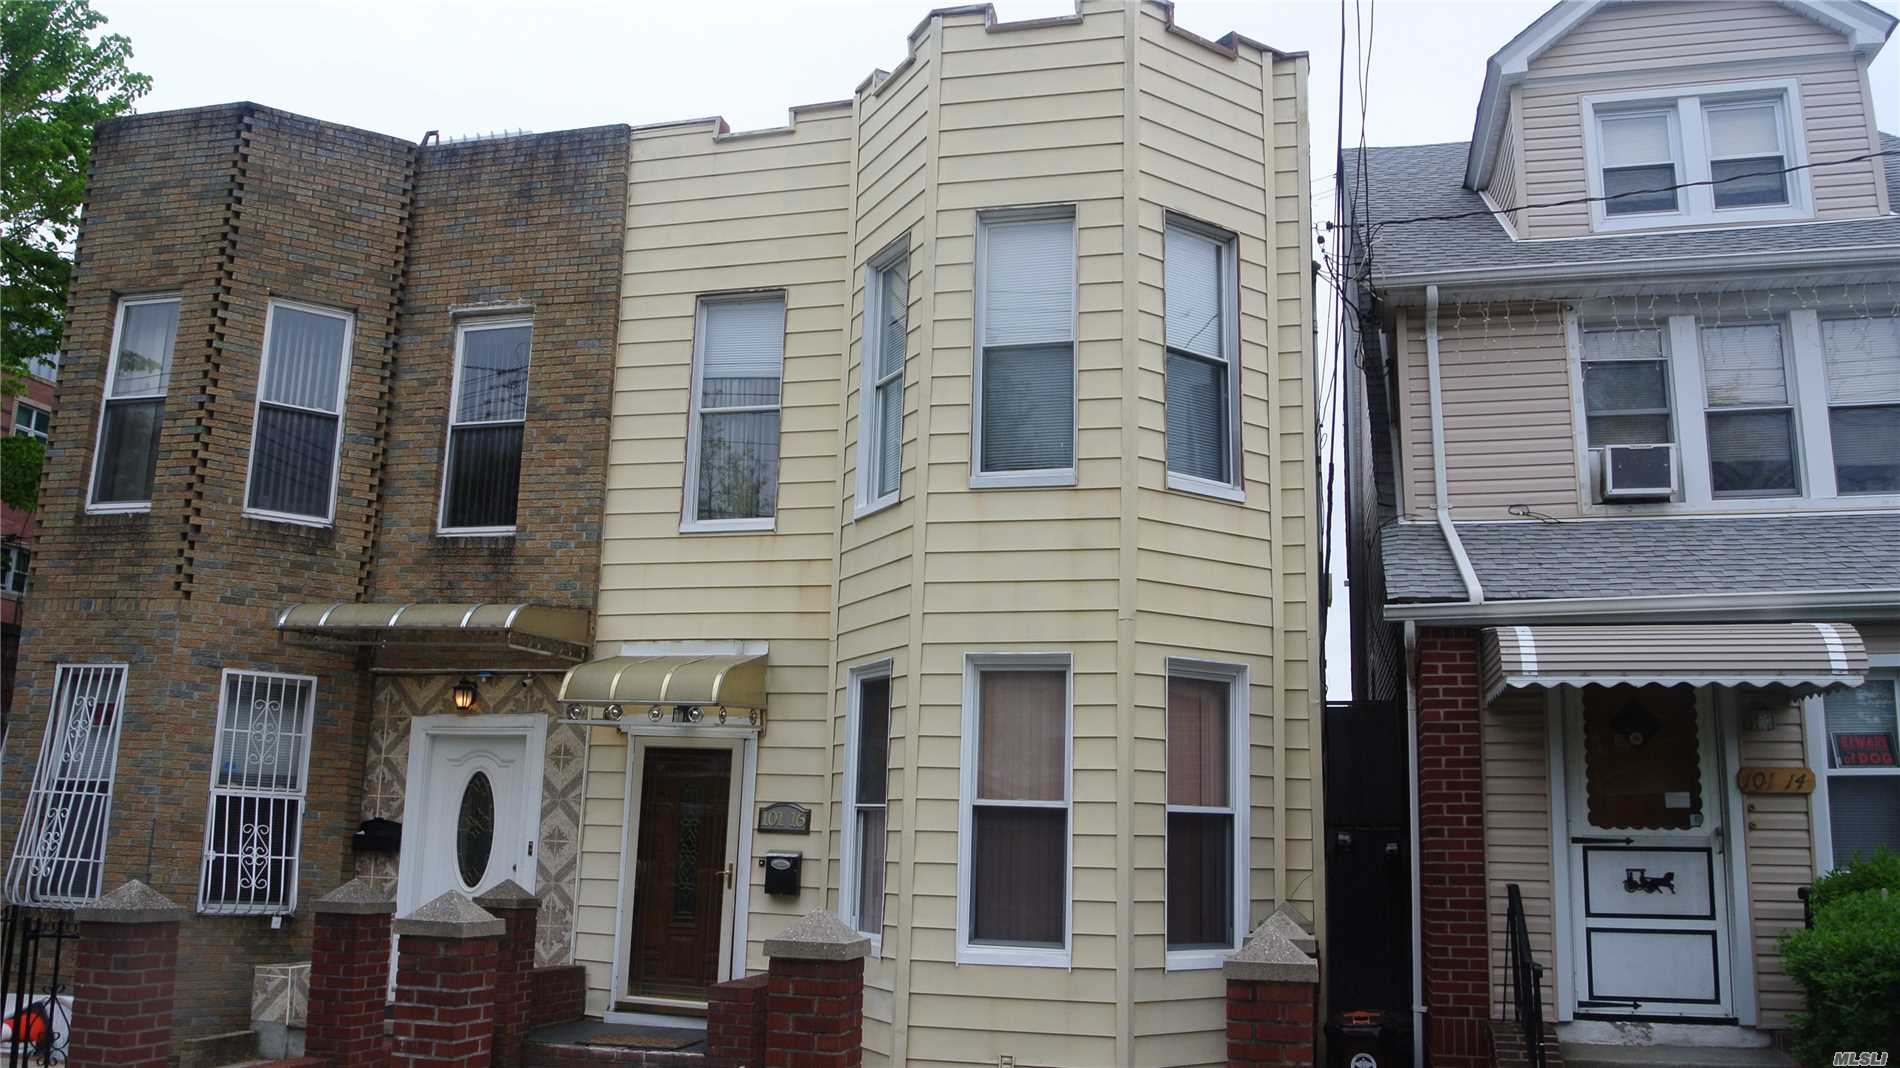 Two Family Frame Colonial in Excellent condition. First Floor Kitchen is extra large, contemporary with a comfortable Dining Area. Located with-in walking distance to Shops, Train, Q-10 Bus to JFK Airport and Manhattan. Owner very motivated to sell. Call For Appointments. To be delivered Fully Vacant.